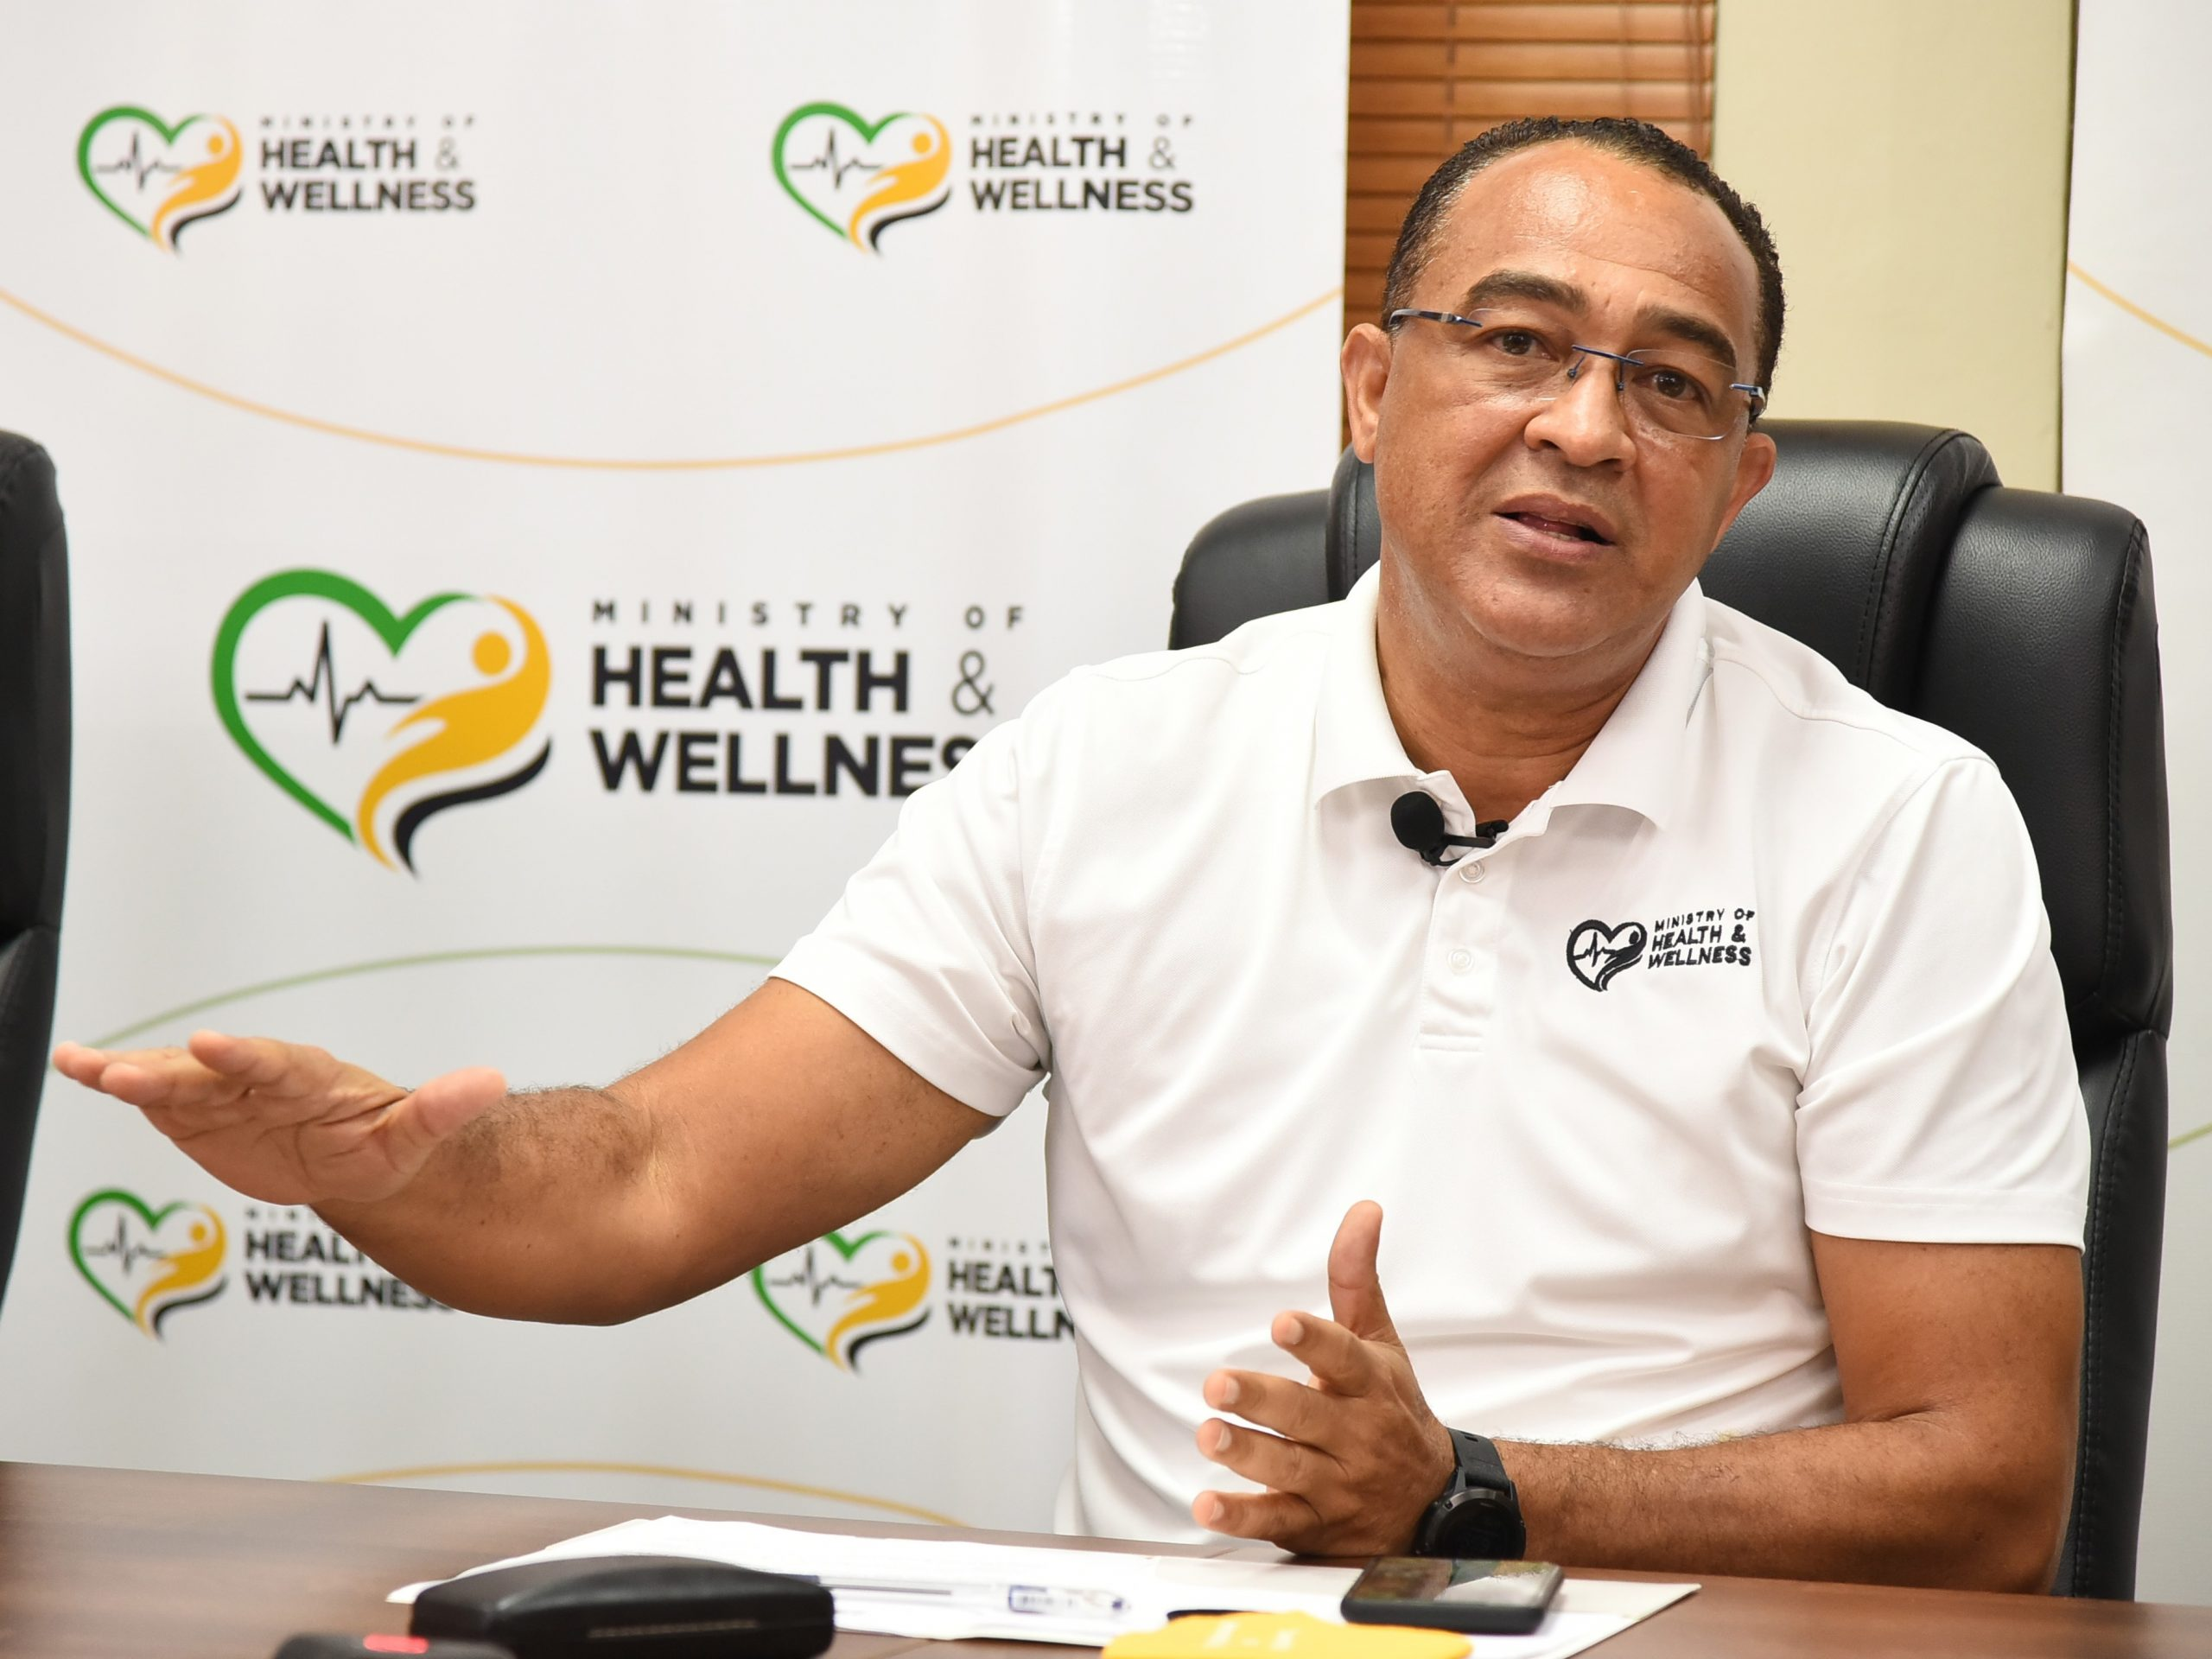 Jamaica confirms four cases of new COVID-19 strain